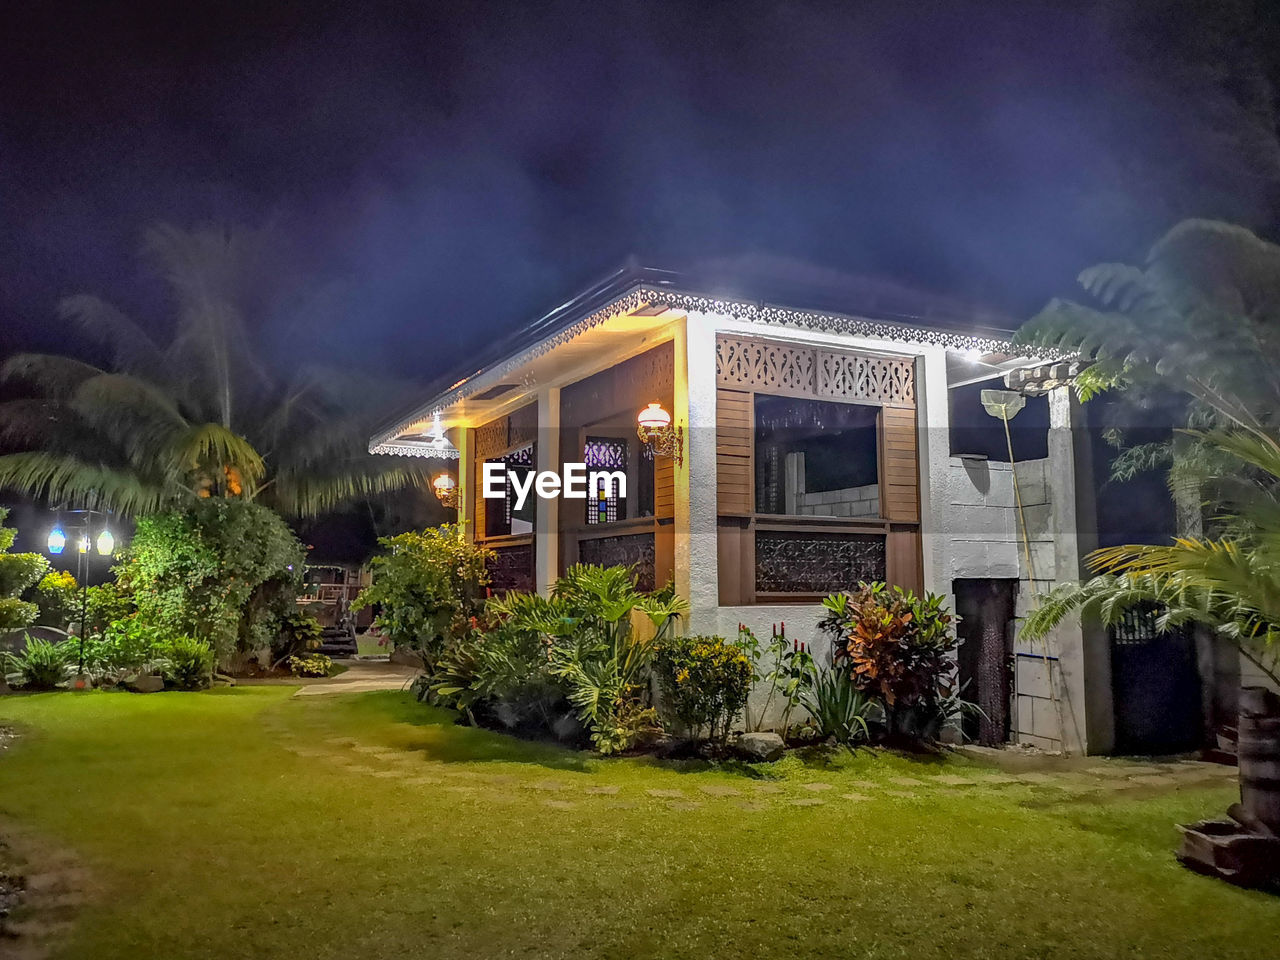 architecture, built structure, building exterior, plant, night, illuminated, grass, nature, building, house, no people, tree, outdoors, entrance, green color, residential district, cloud - sky, window, lighting equipment, growth